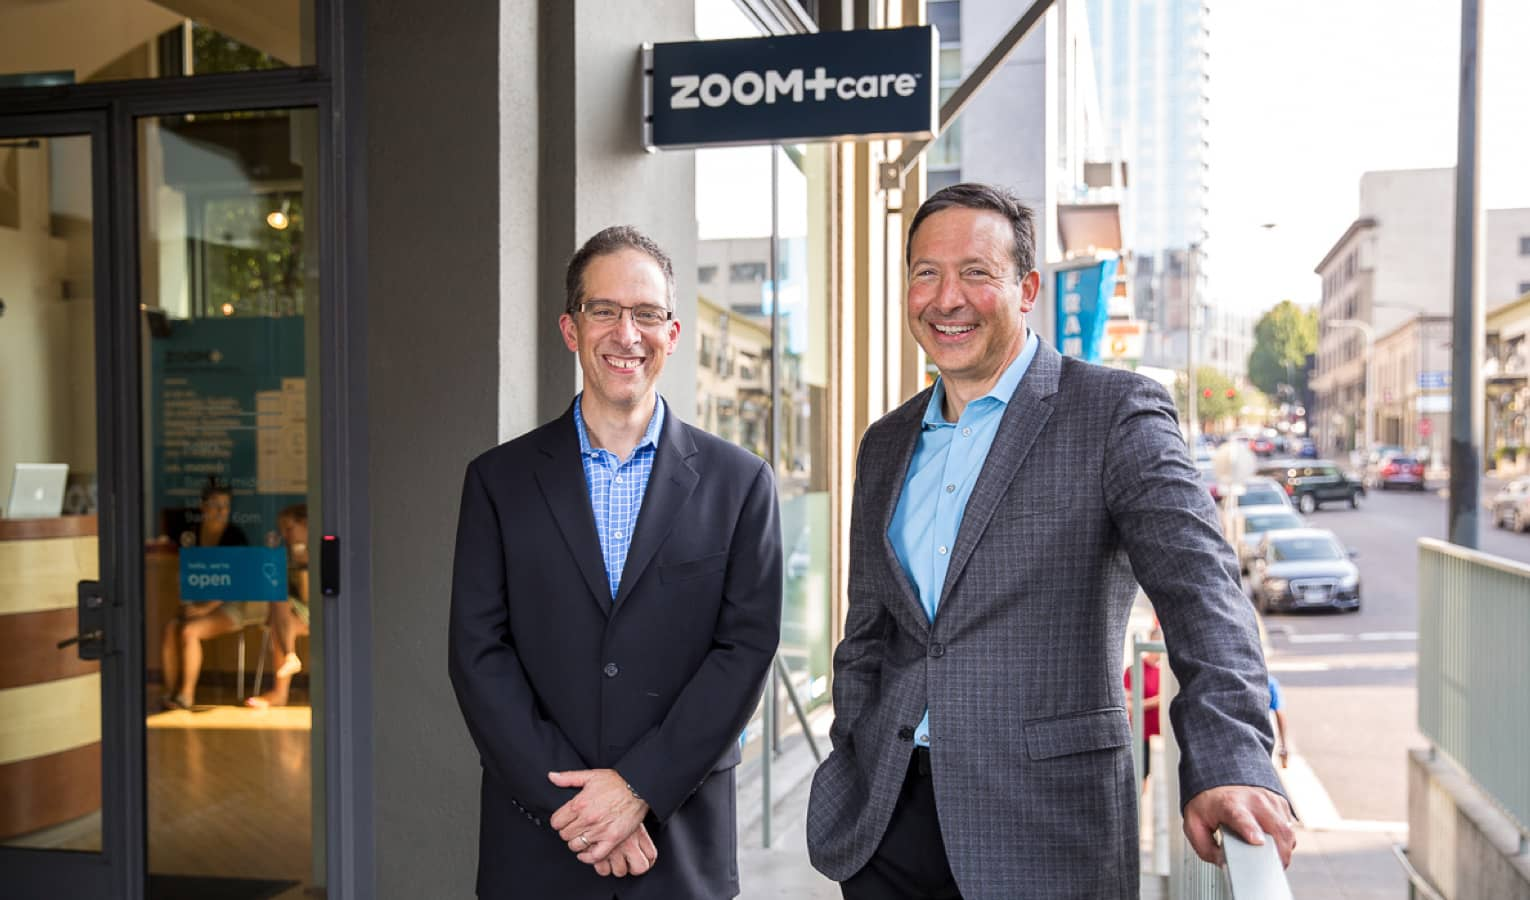 <p>Our co-founders, Dave Sanders and Albert Dipiero, are MDs and serial entrepreneurs. They know medicine. They know business. Together, they've been tackling the broken healthcare system and winning for over 20 years.</p>